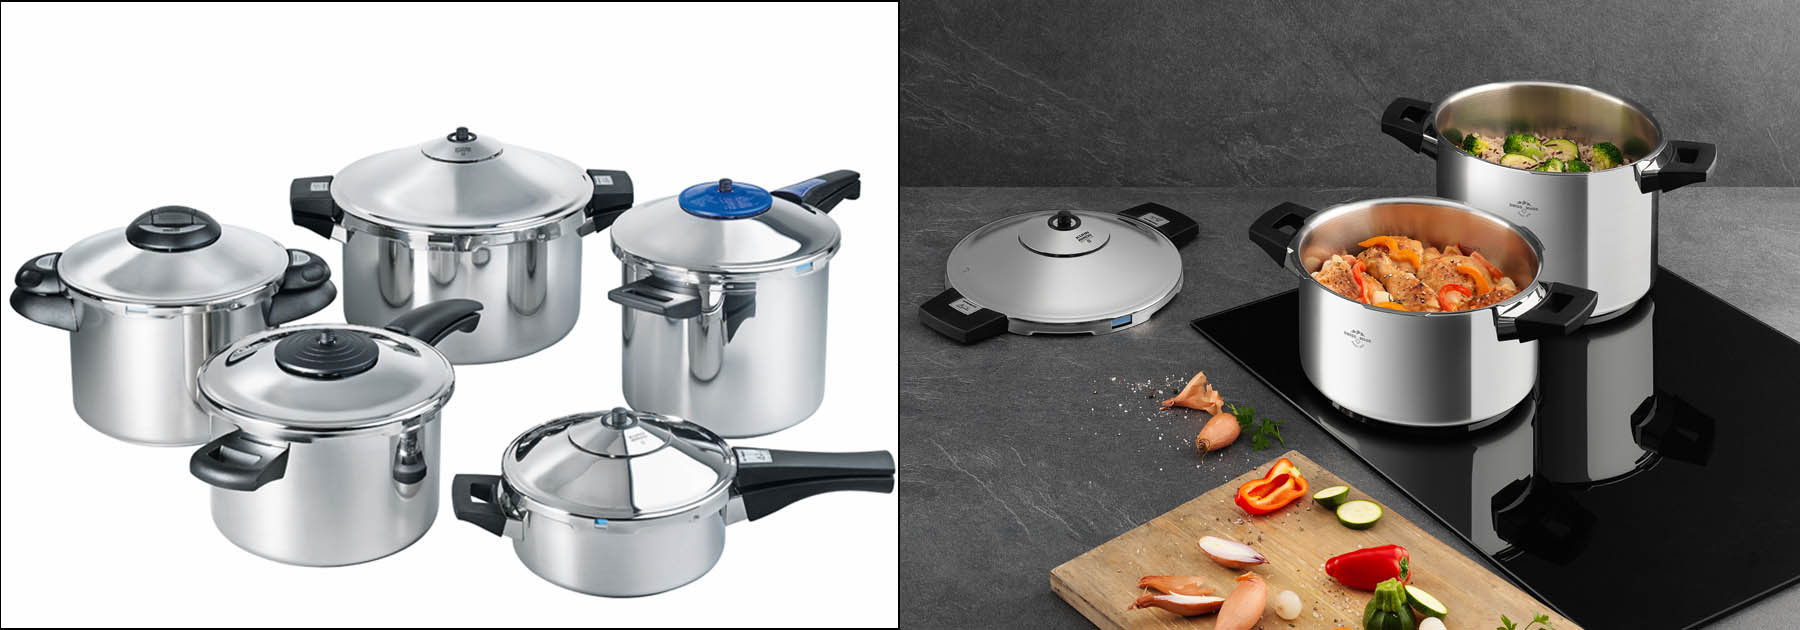 Duromatic pressure cookers, discount, offer